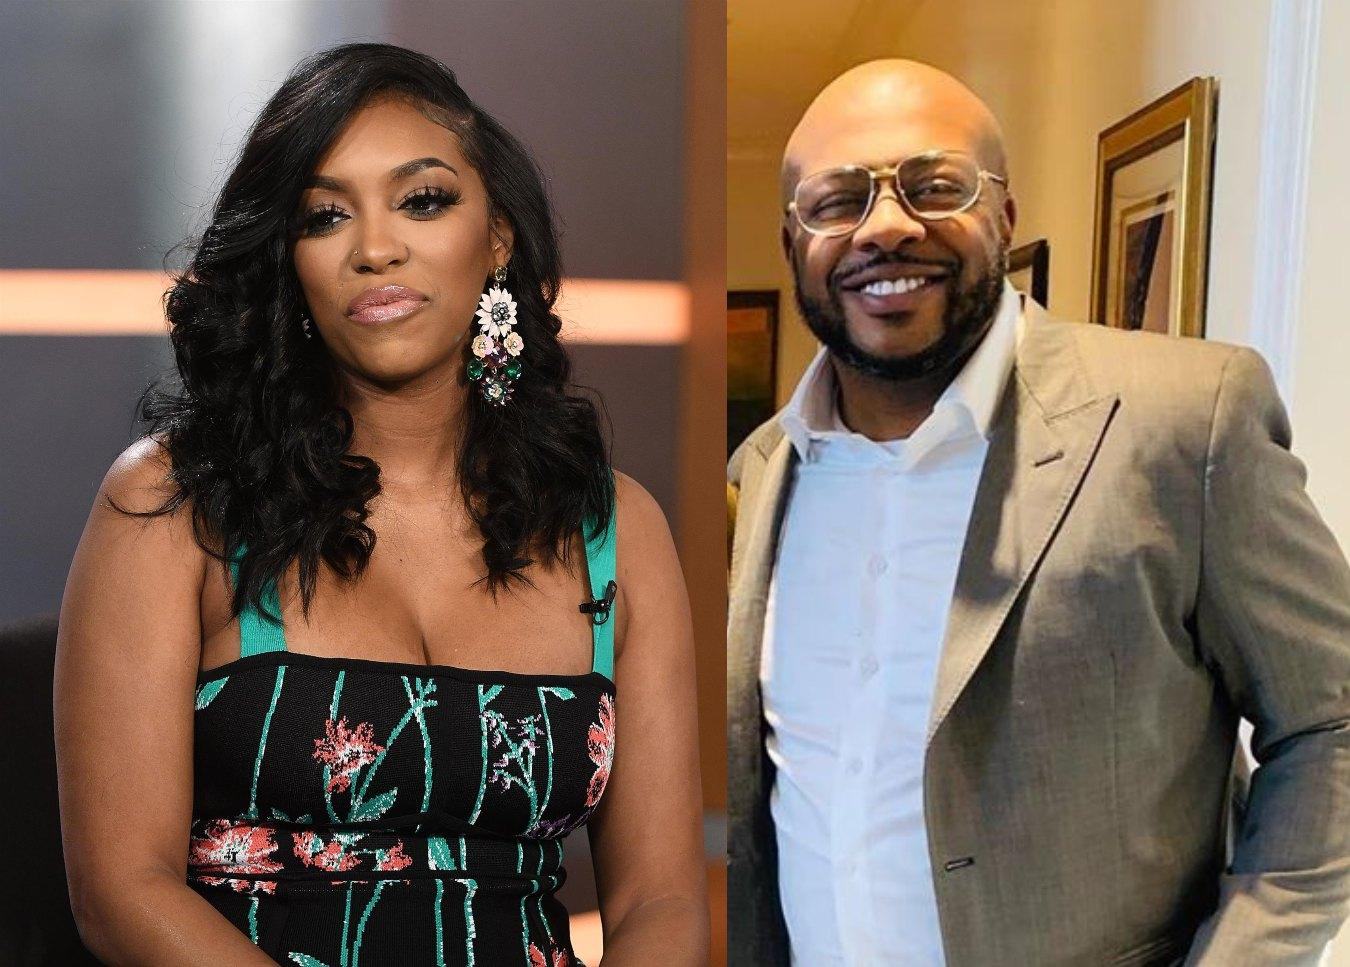 Porsha Williams' Fans Are Proud Of Her And Dennis McKinley For Being Proactive During The Protests